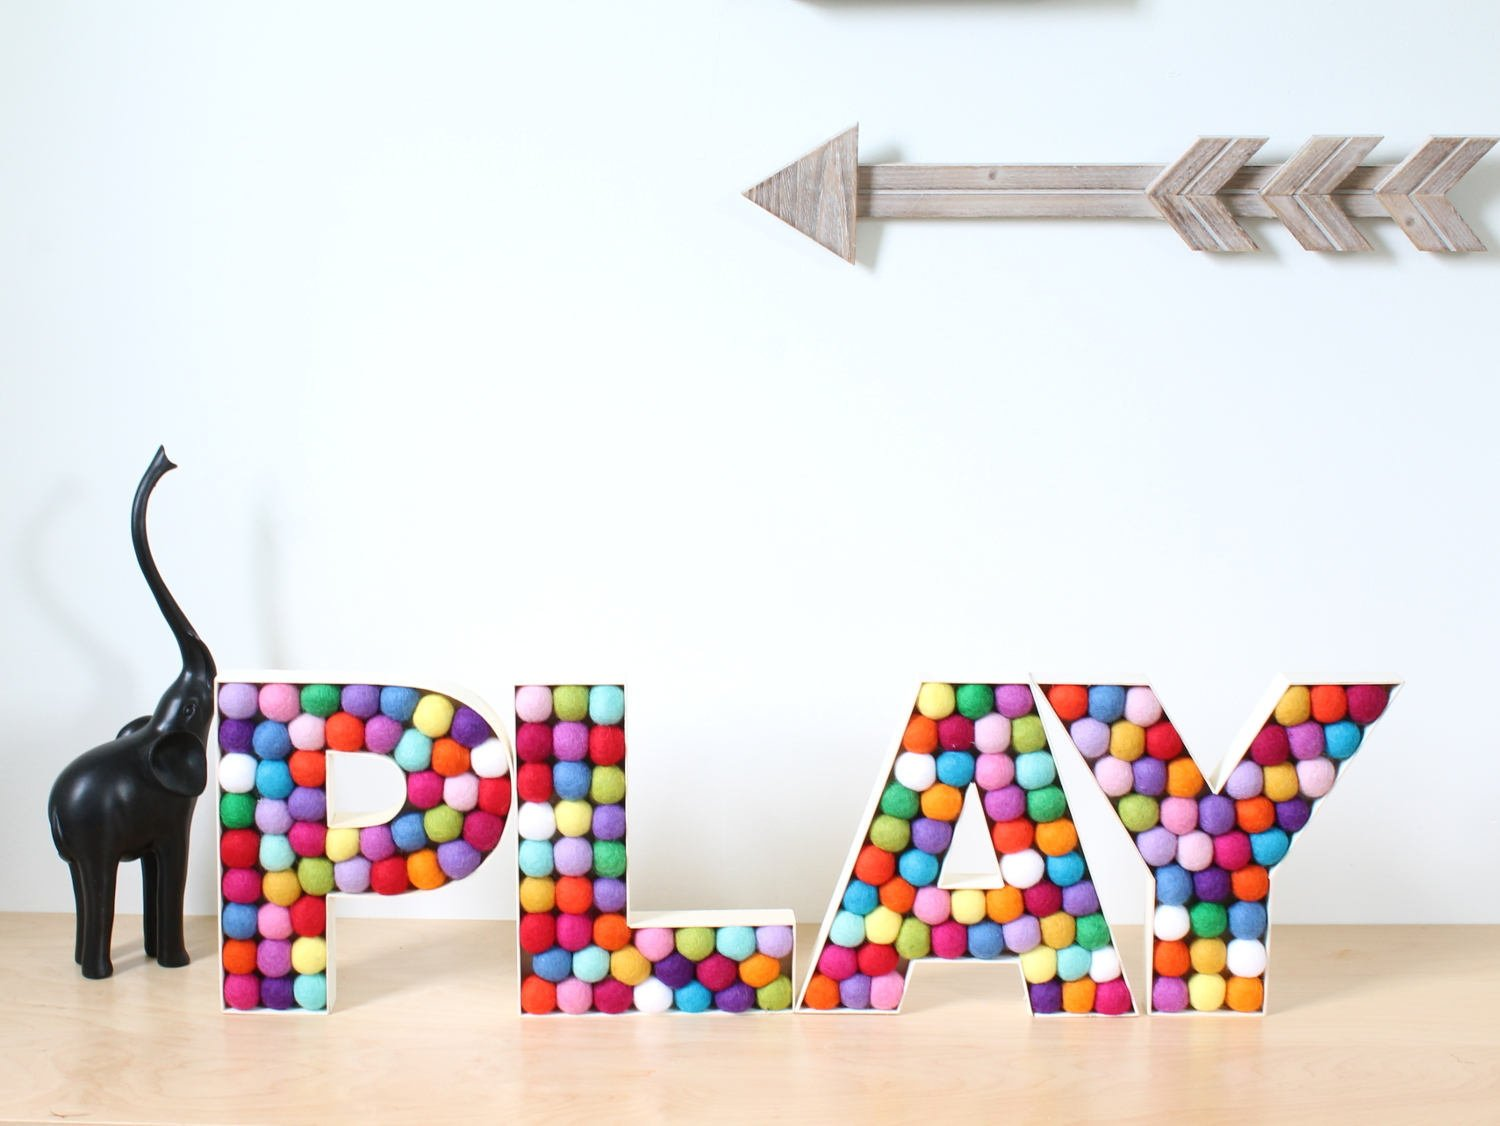 Felt Ball Alphabet Letters PLAY, Nursery Decor, Felt Balls